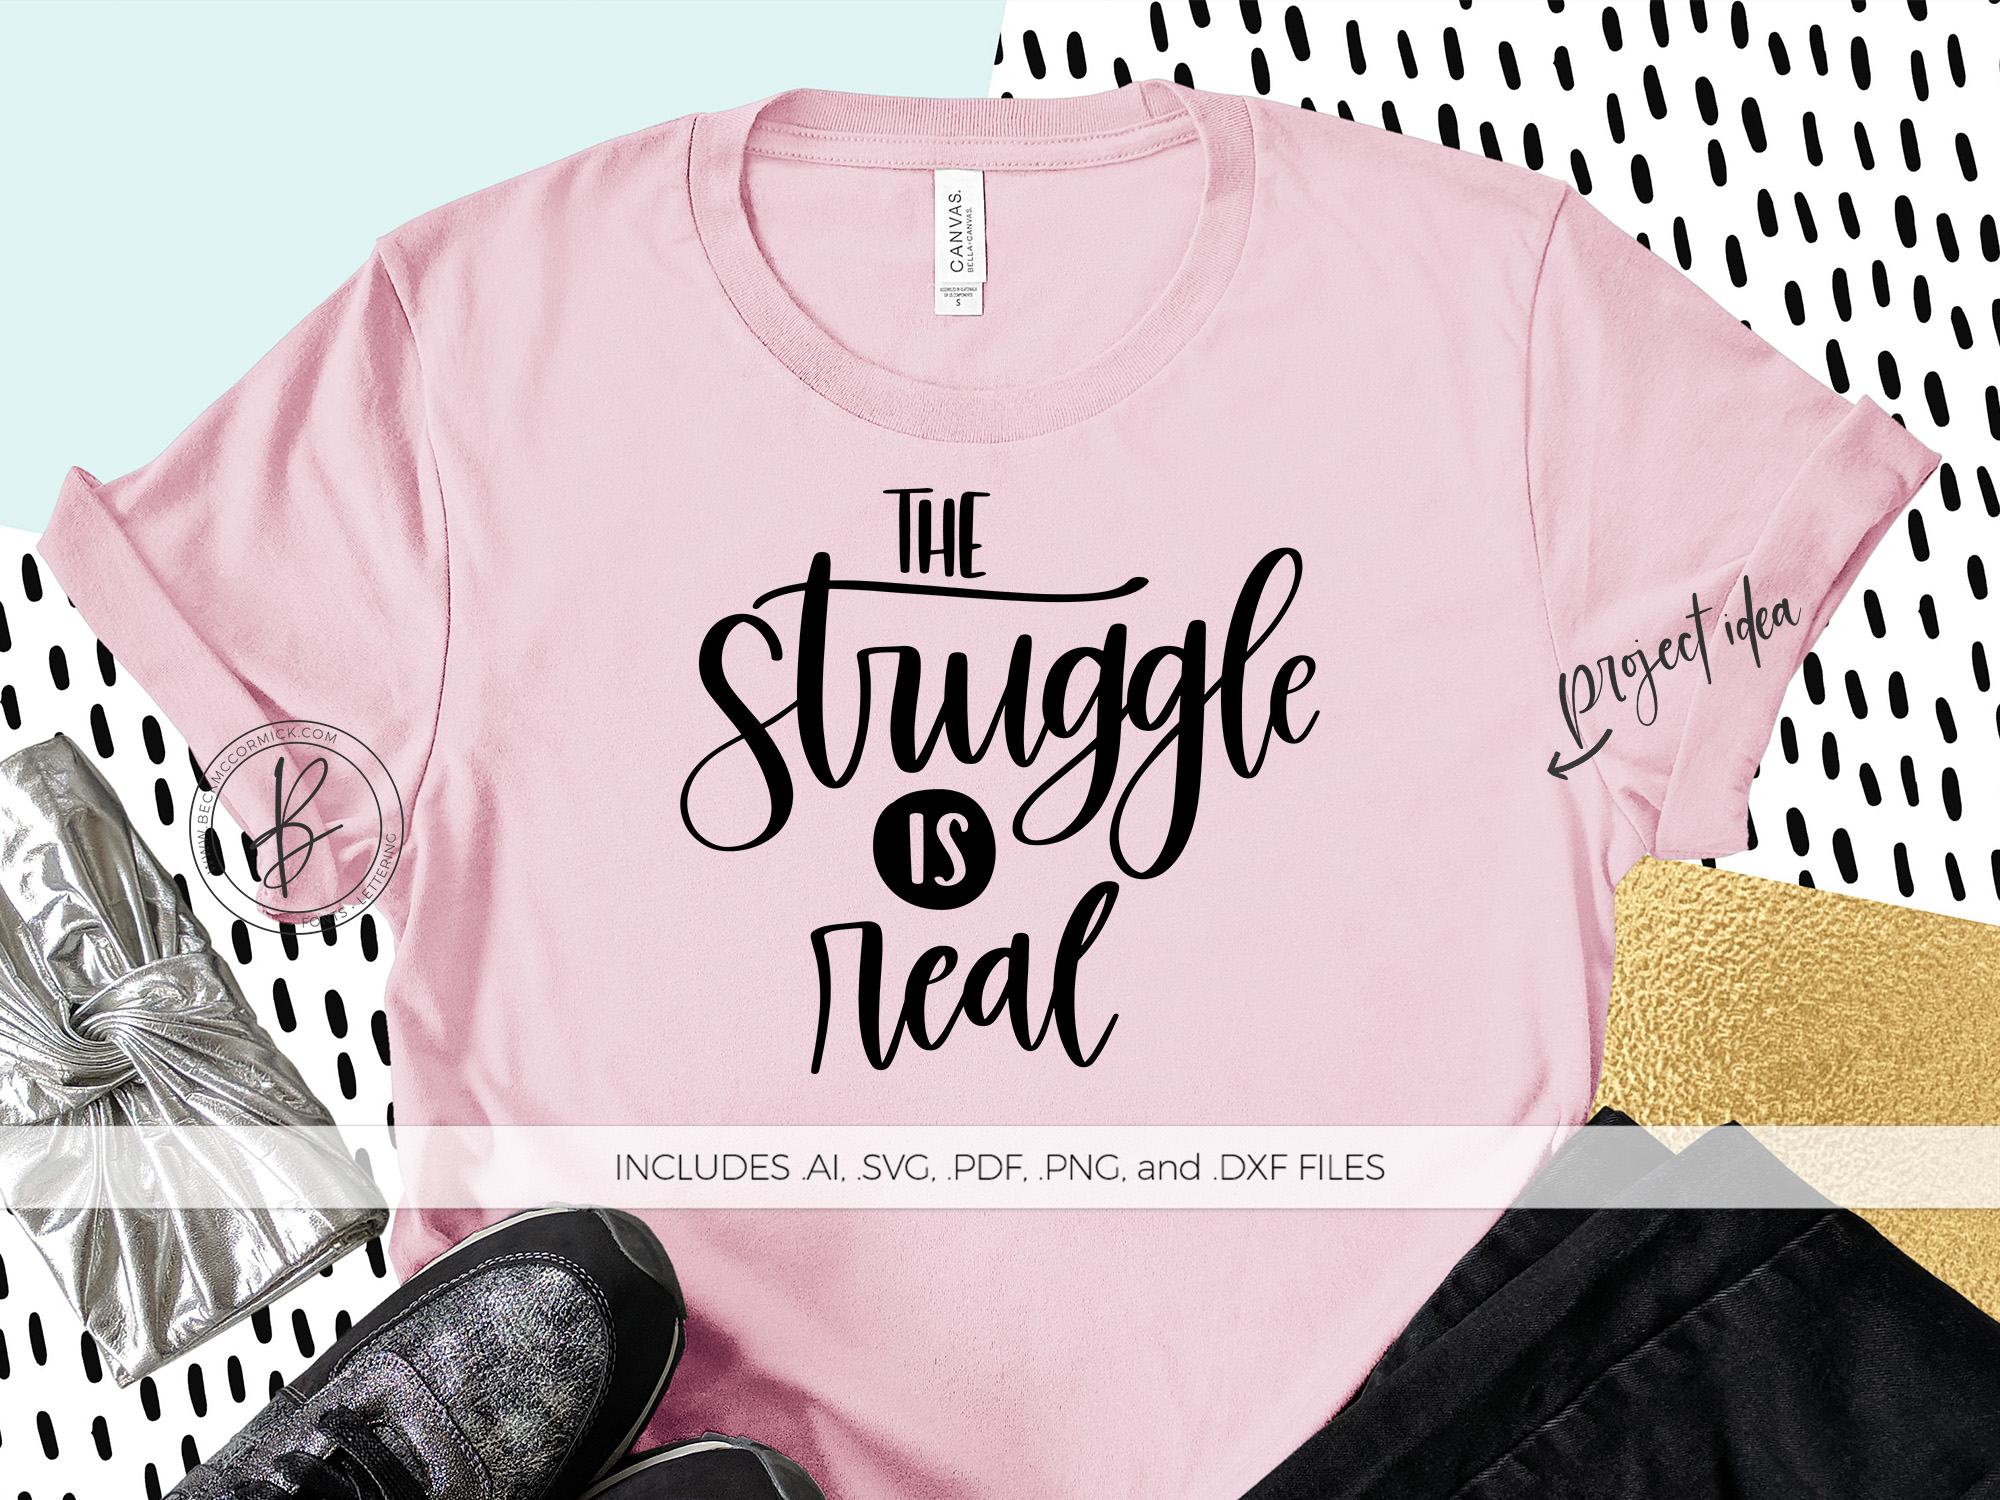 The Struggle Is Real Graphic By Beckmccormick Creative Fabrica